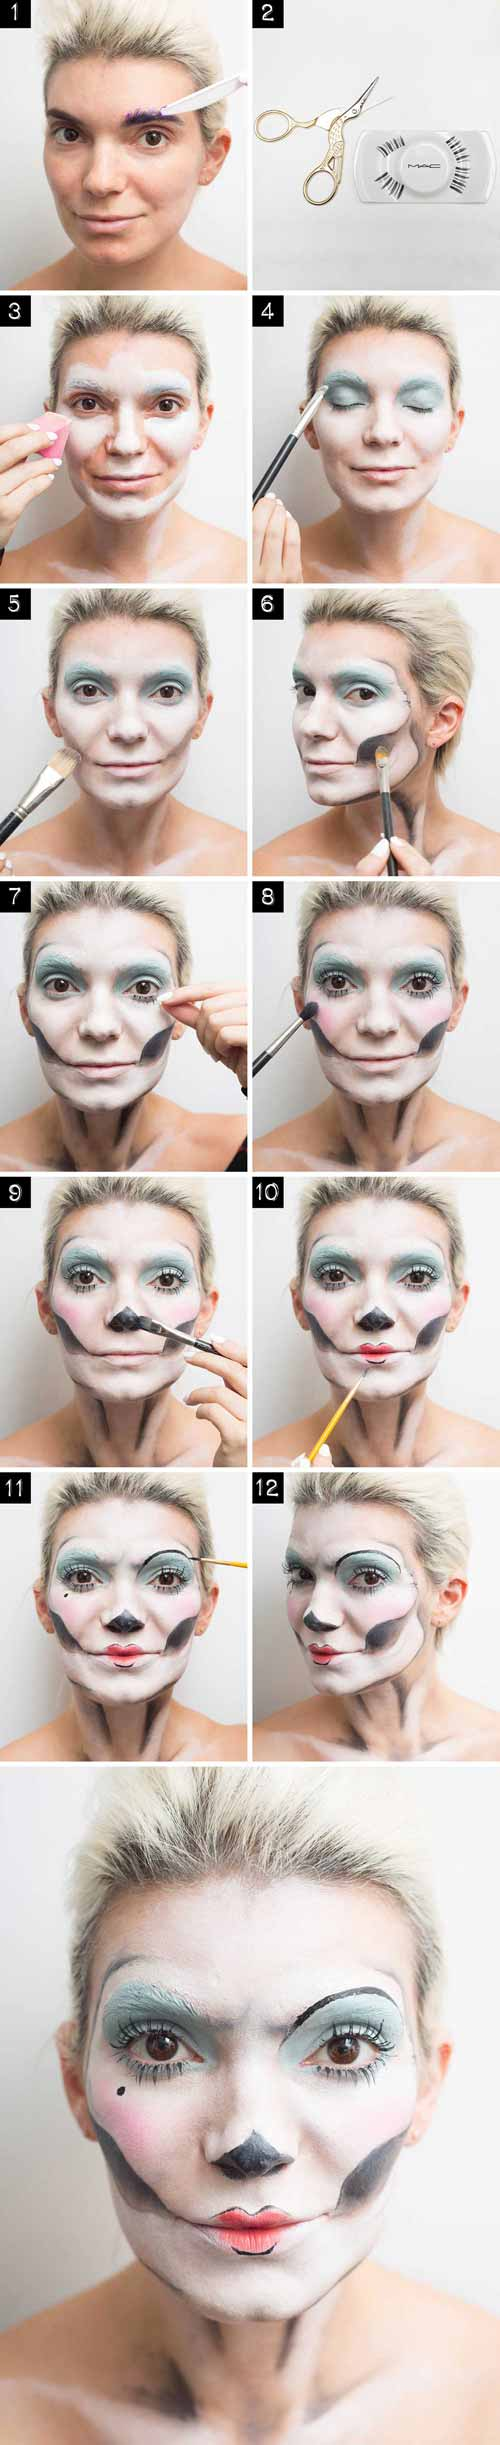 4 cach make-up cuc quai cho dem halloween chi rieng ban co - 5